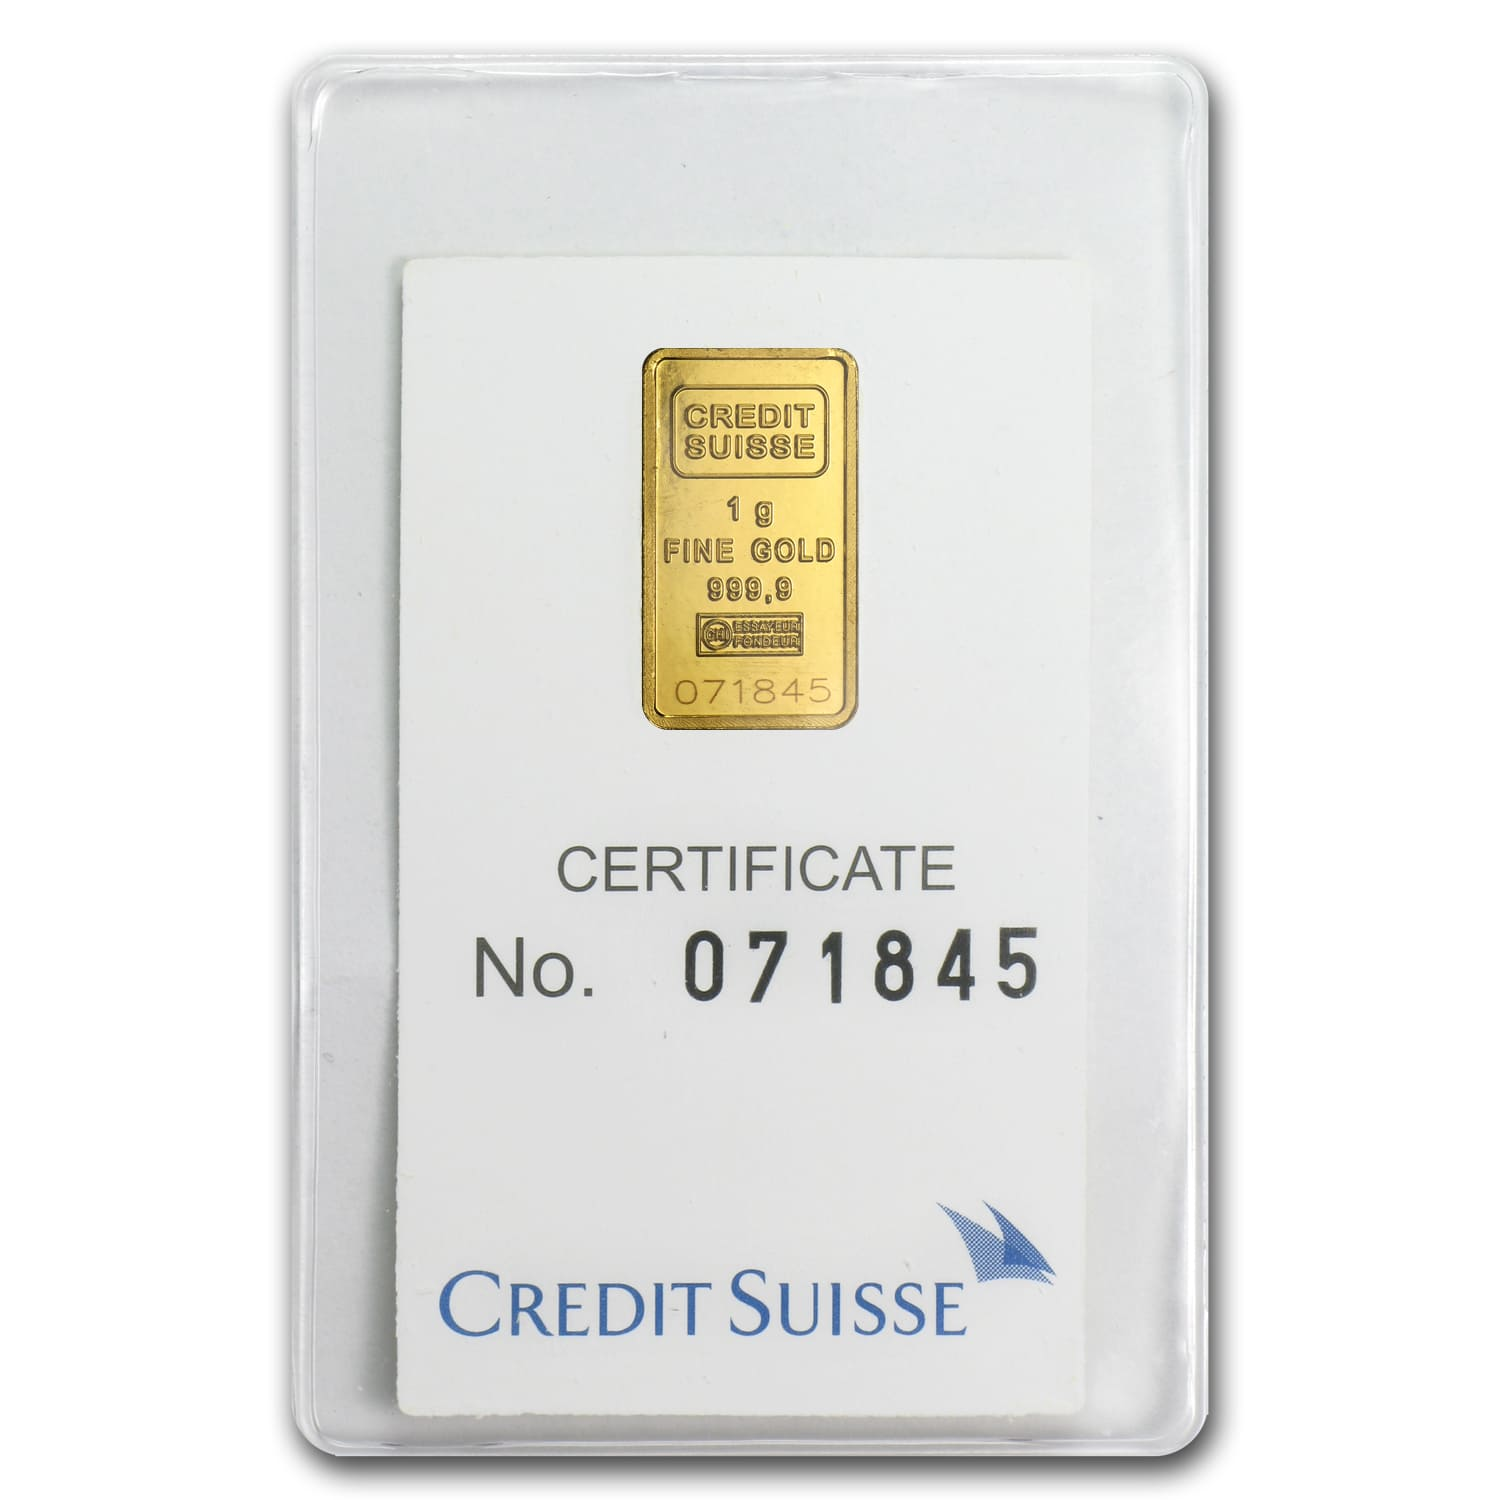 1 gram Gold Bar - Credit Suisse (Statue of Liberty) (In Assay)